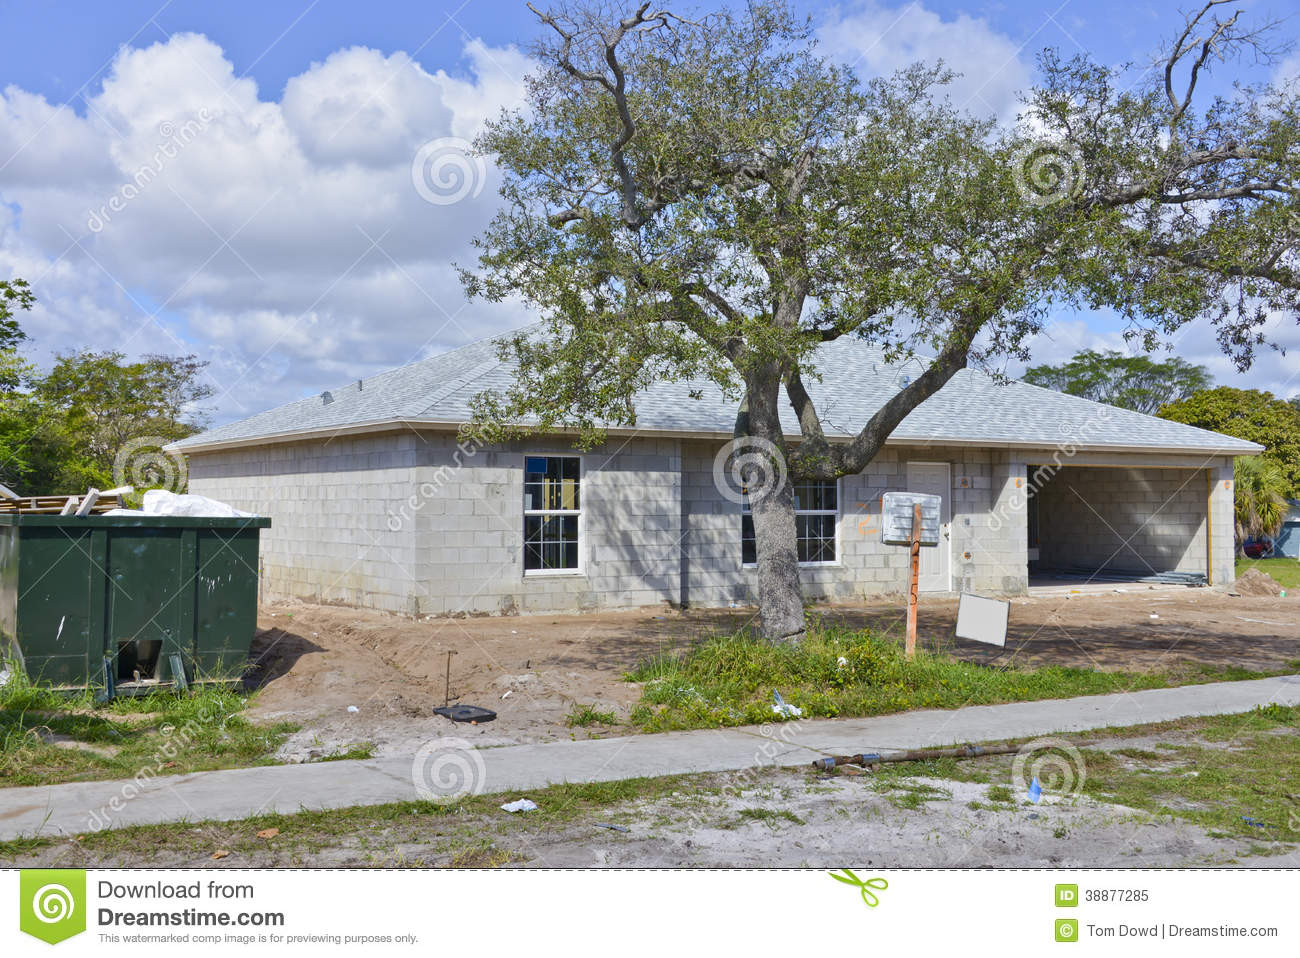 Family home under construction stock image image 38877285 for Concrete homes florida